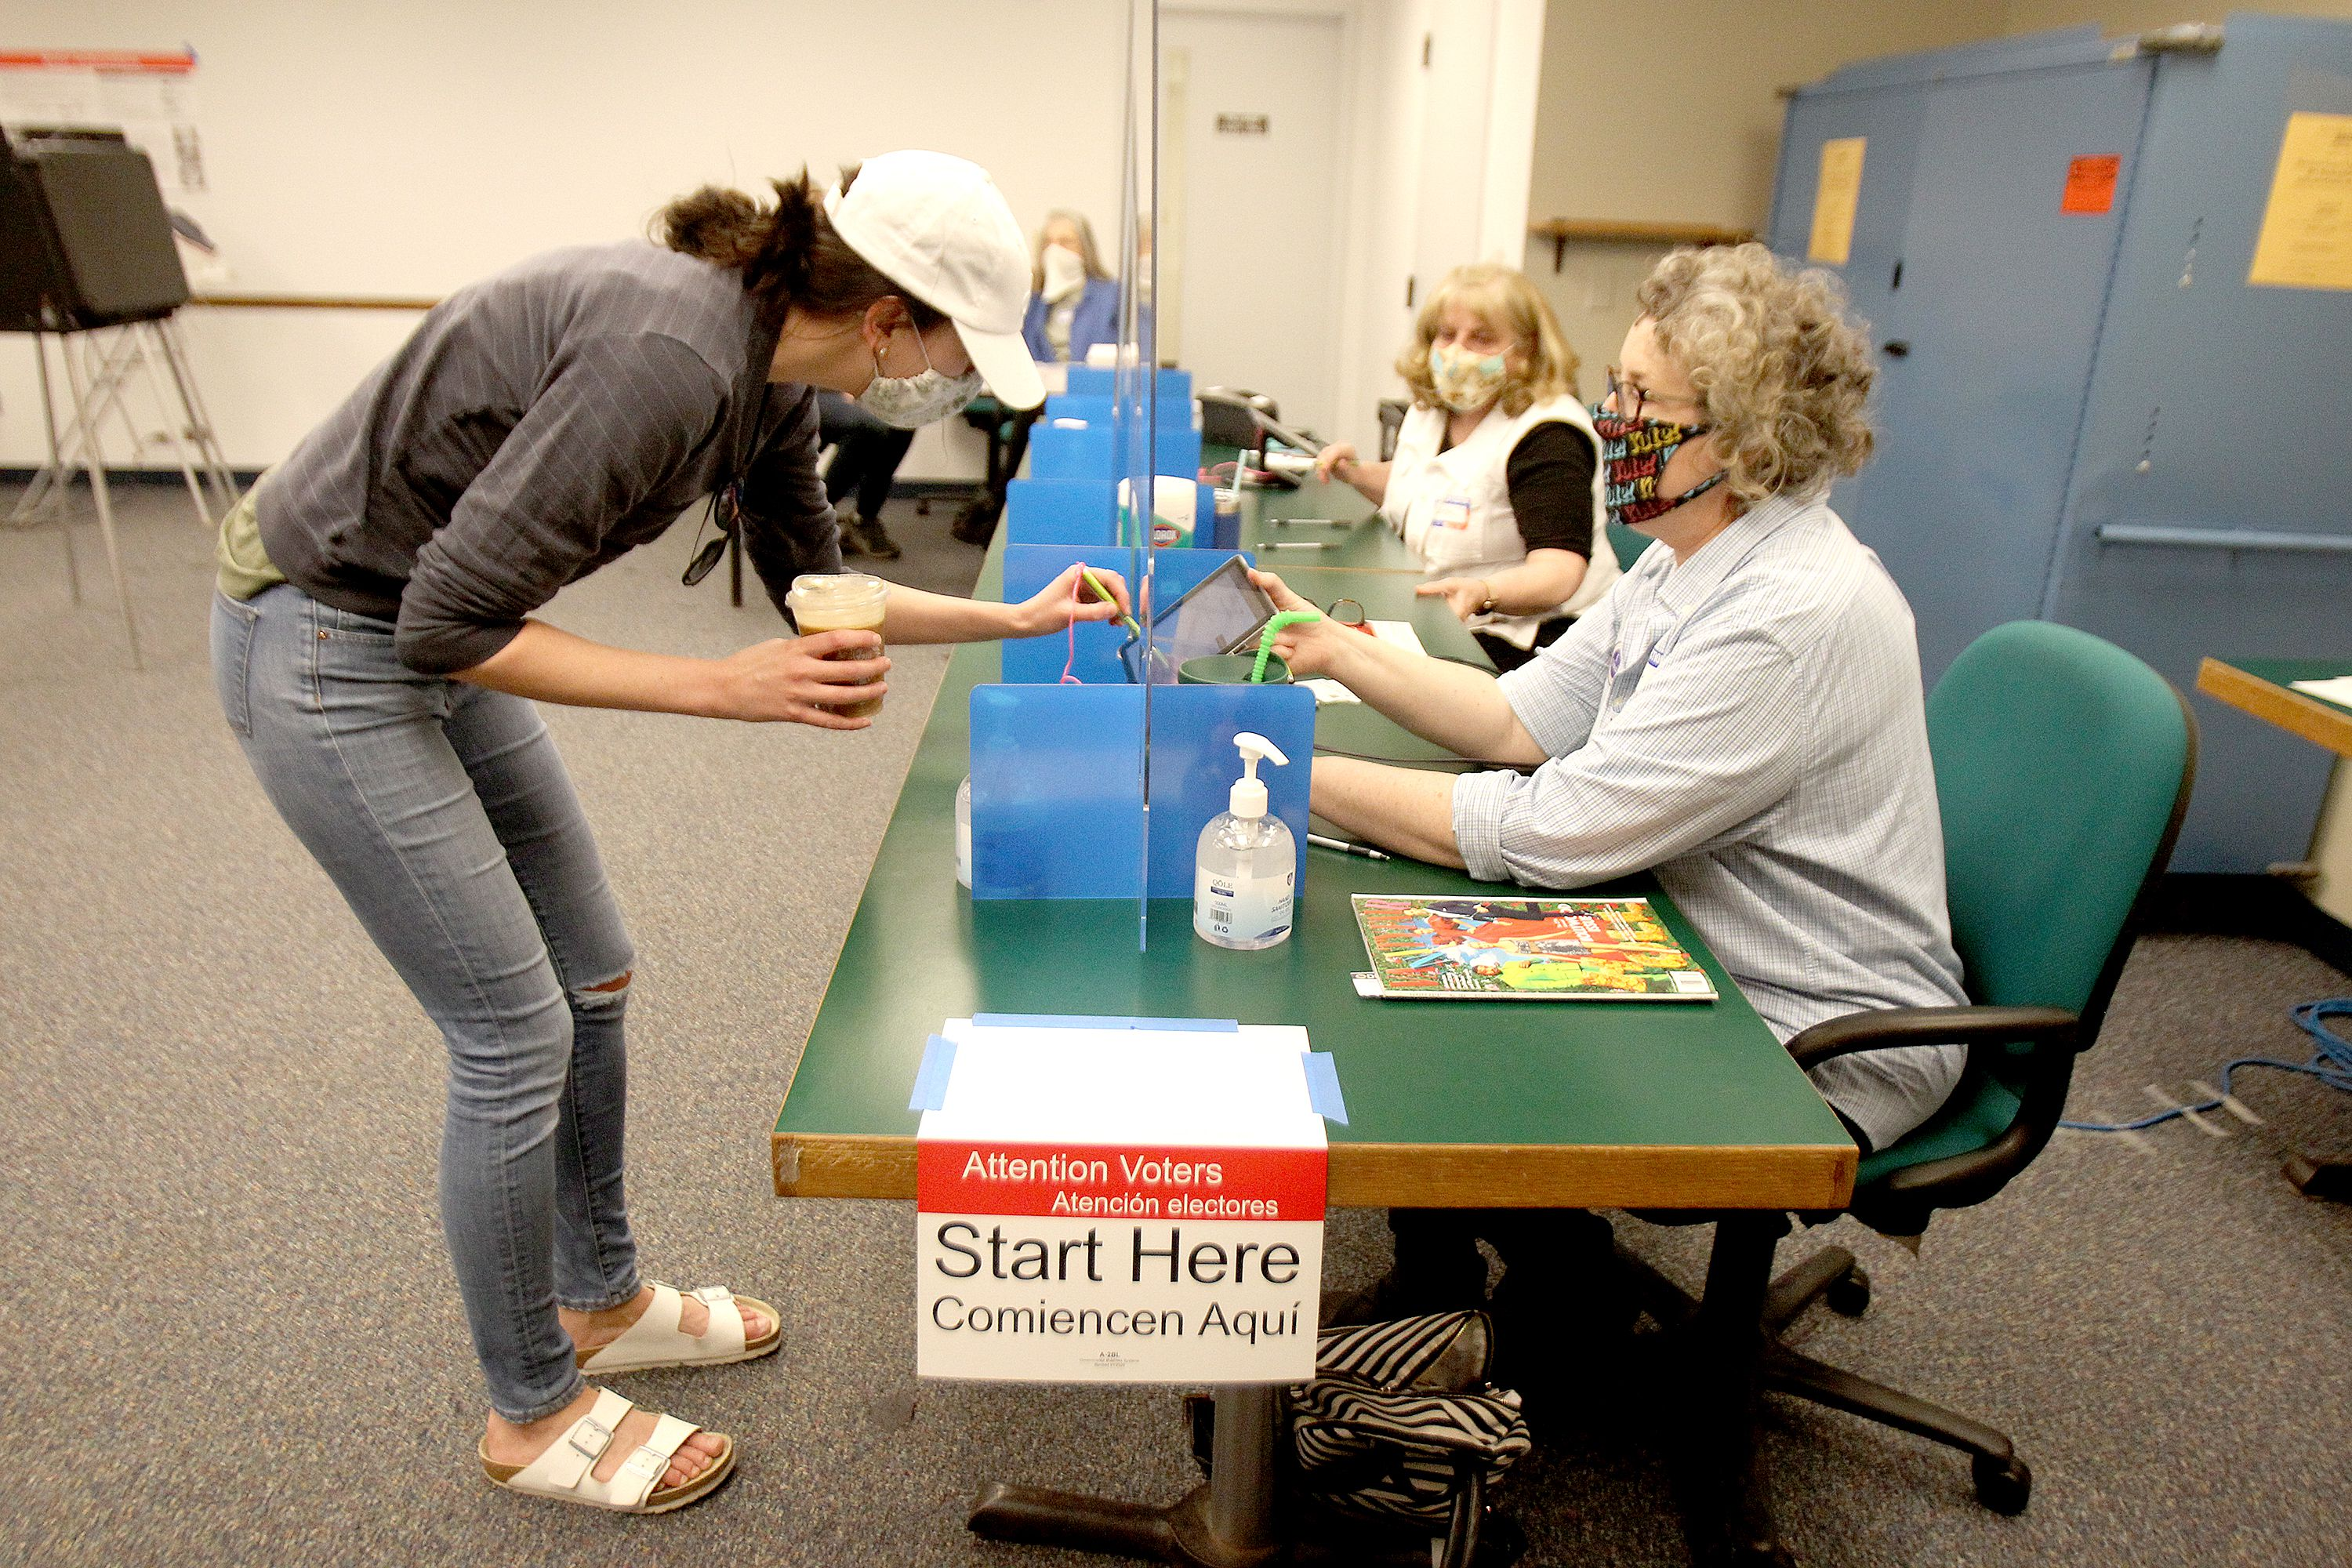 Kayla Petrey of Downers Grove is assisted by Election Judge Sheila McGlone during voting for the consolidated election at the Downers Grove Village Hall on Tuesday, April 6, 2021.